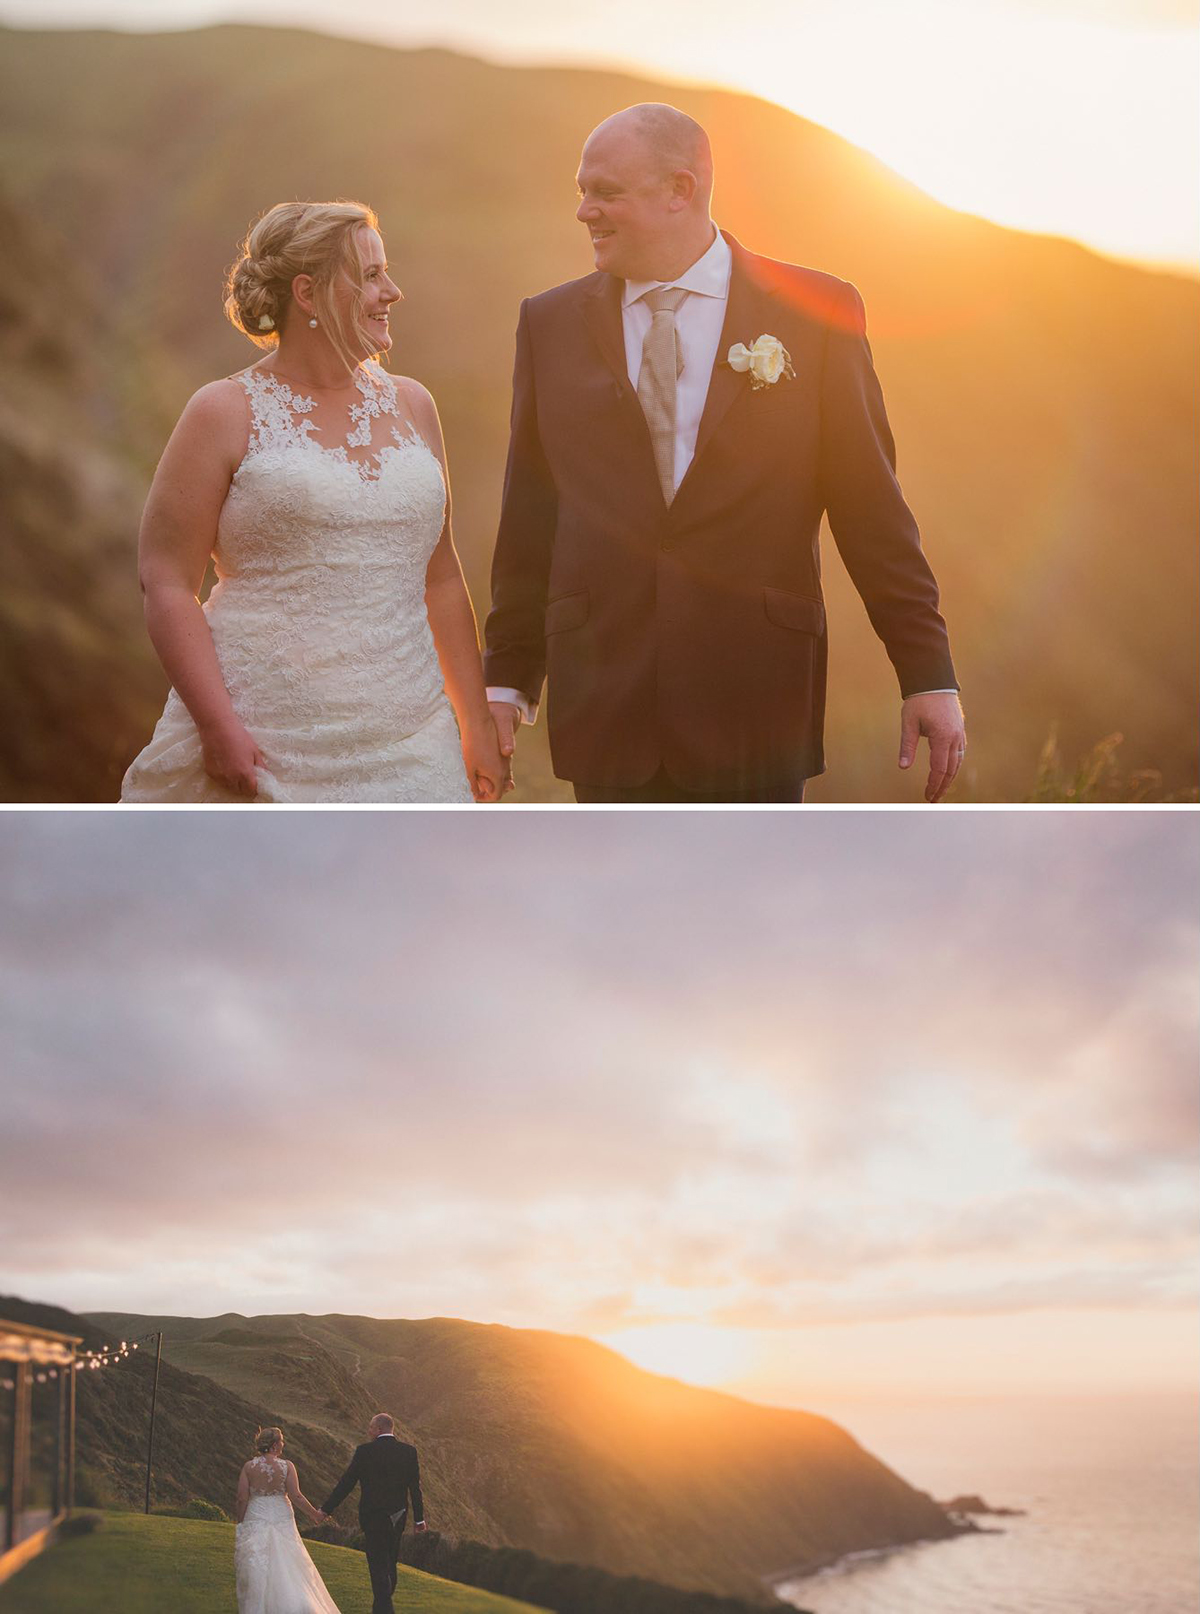 Sarah + Stew Married at Boomrock. Images by Siaosi Photography.